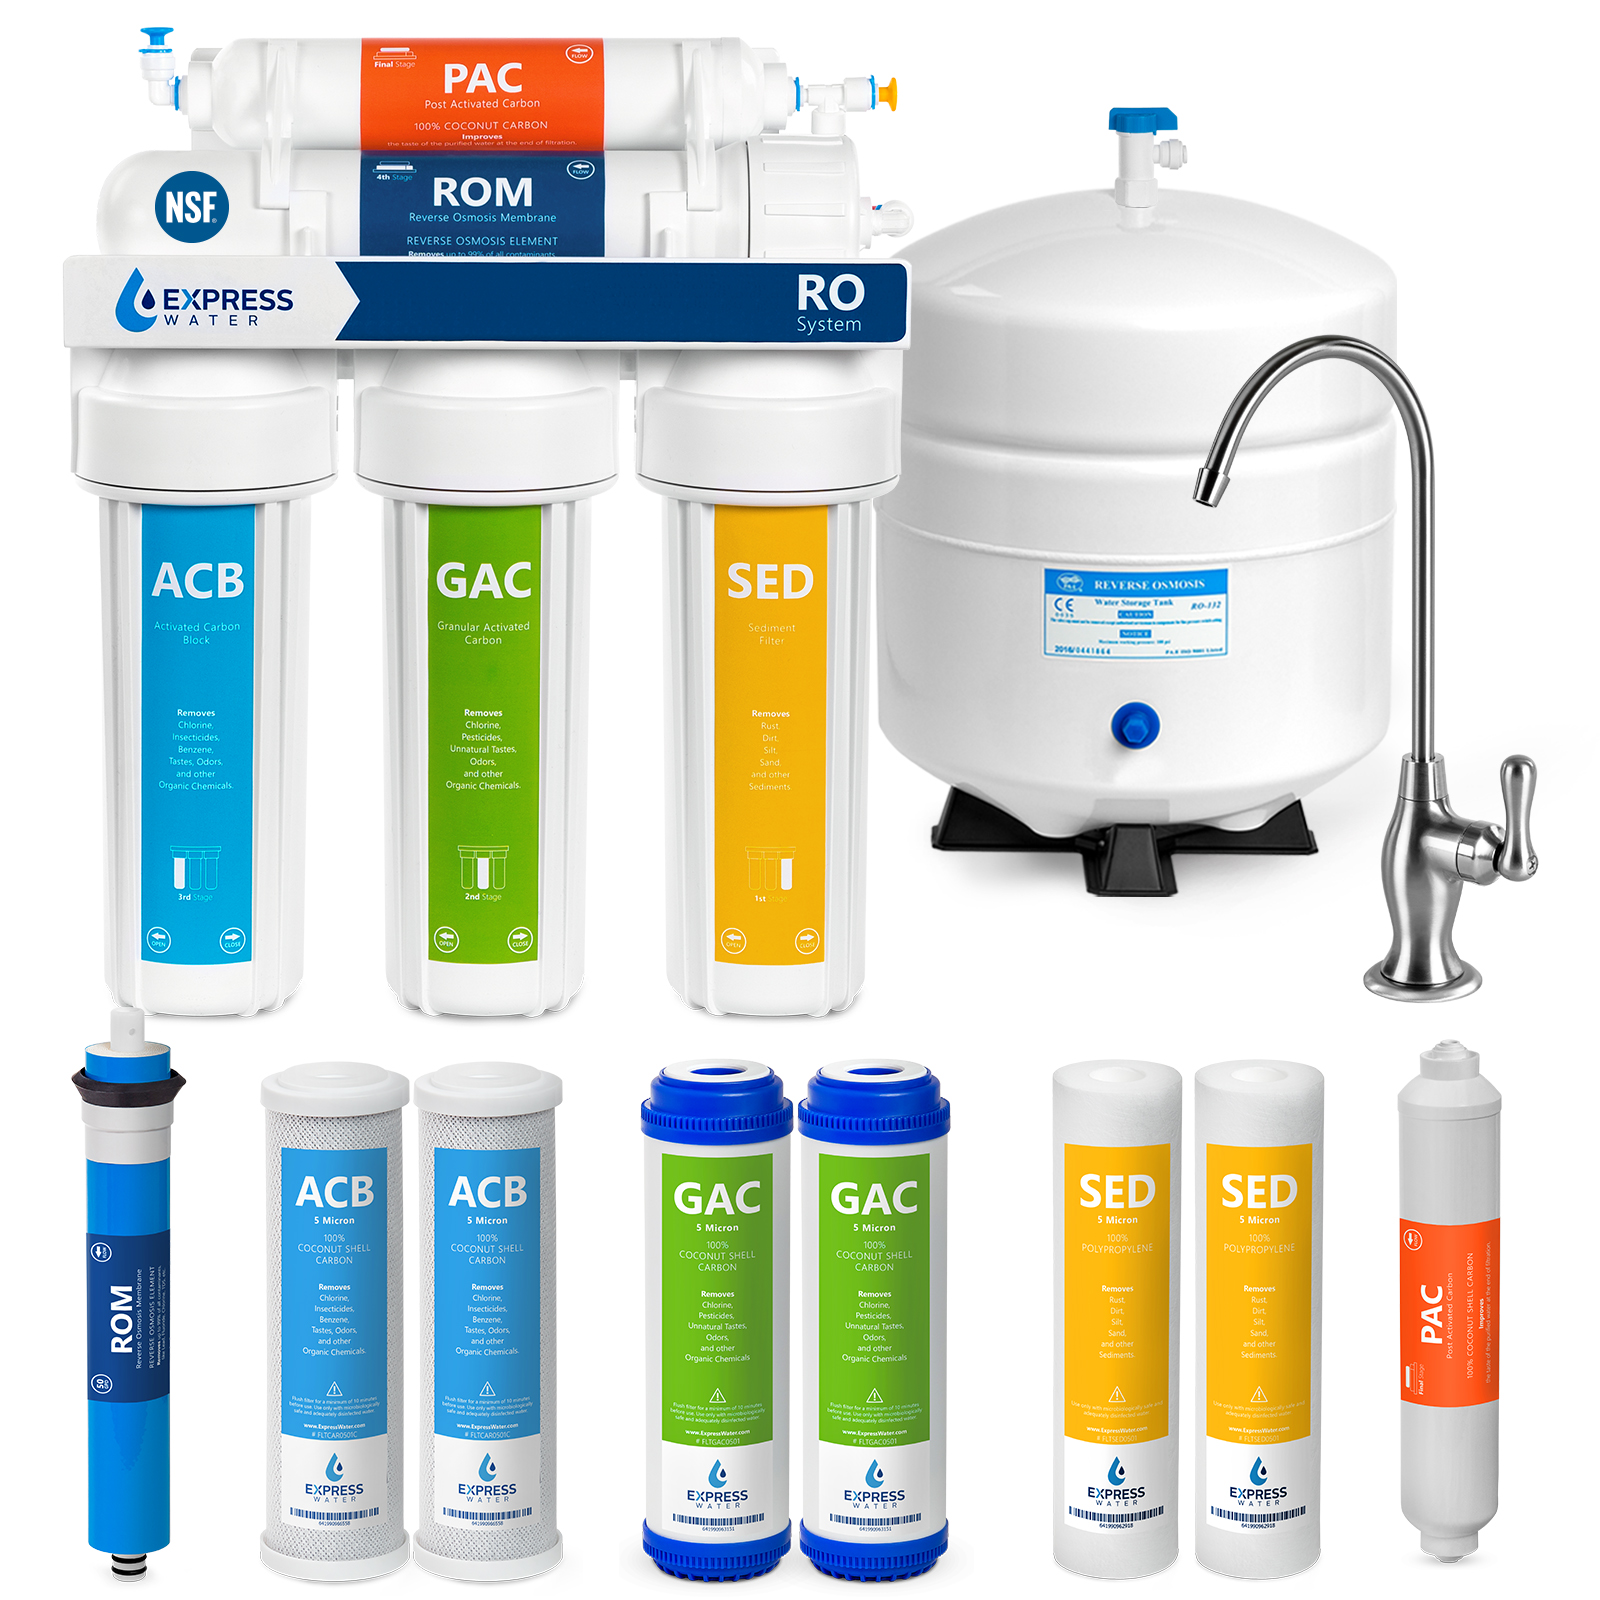 express water reverse osmosis water filtration system 5 stage ro water purifier with faucet and tank under sink water filter plus 4 replacement